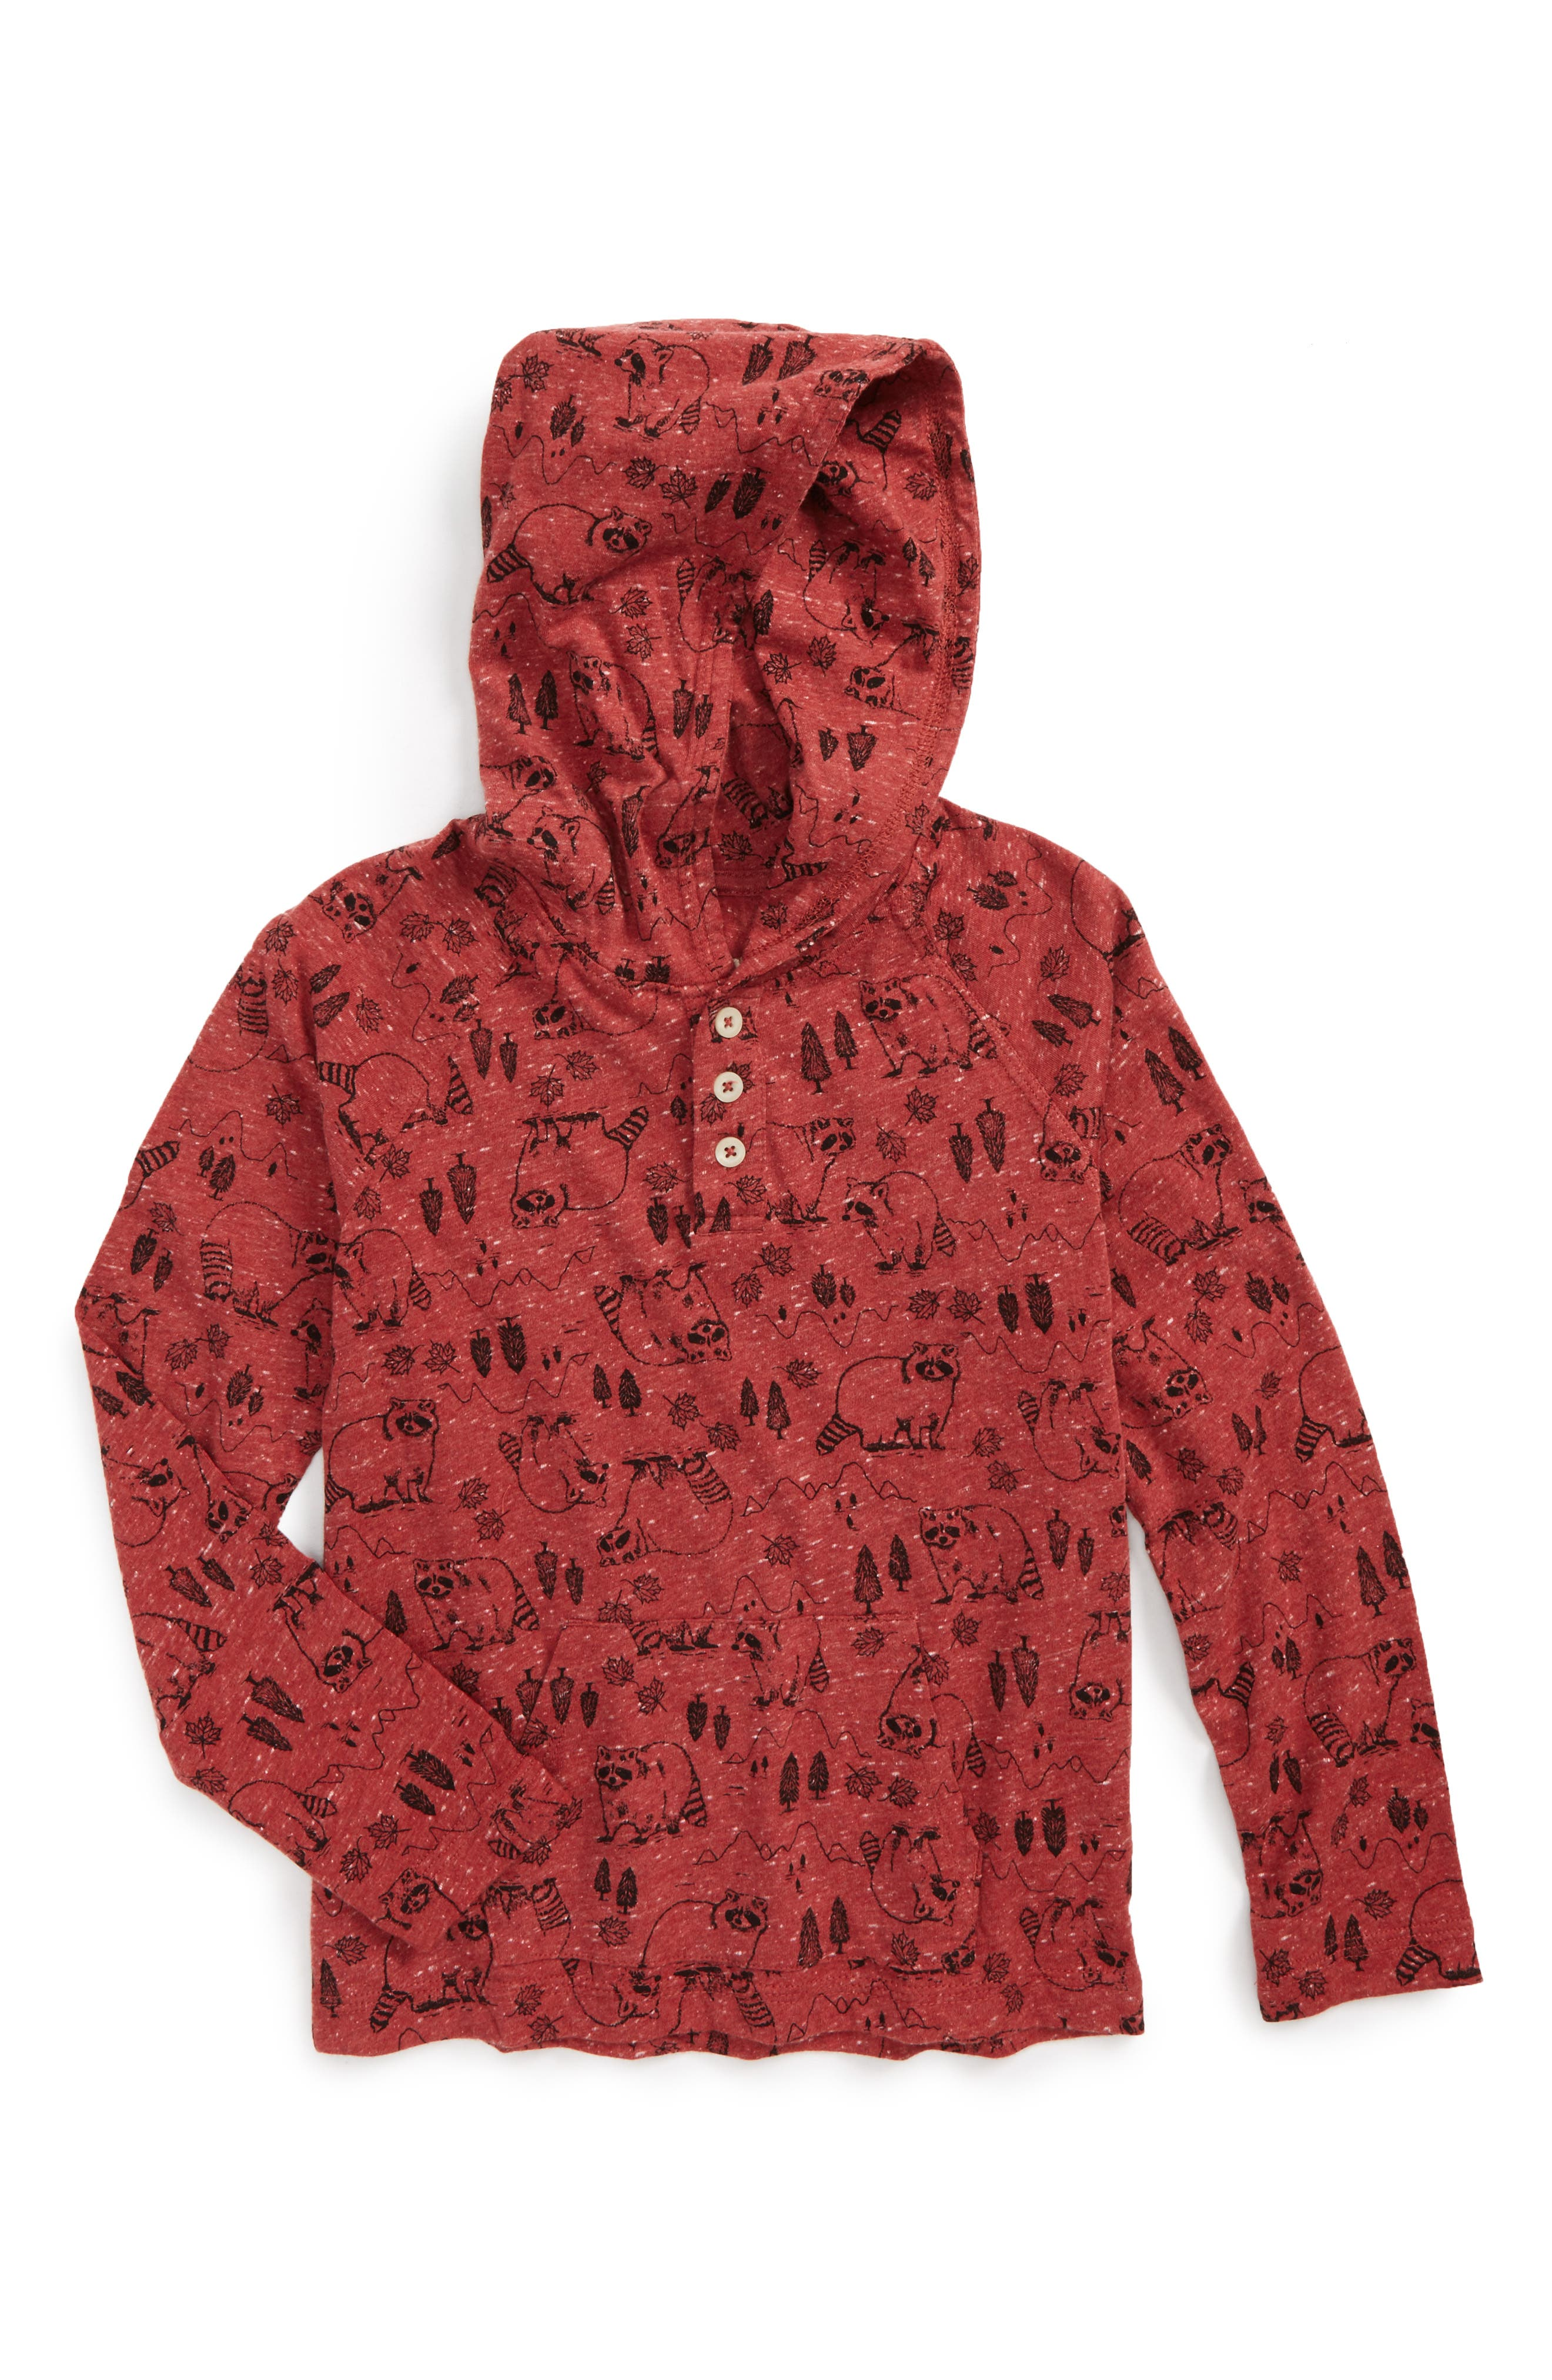 Alternate Image 1 Selected - Tucker + Tate Woodland Print Henley Hoodie (Toddler Boys & Little Boys)